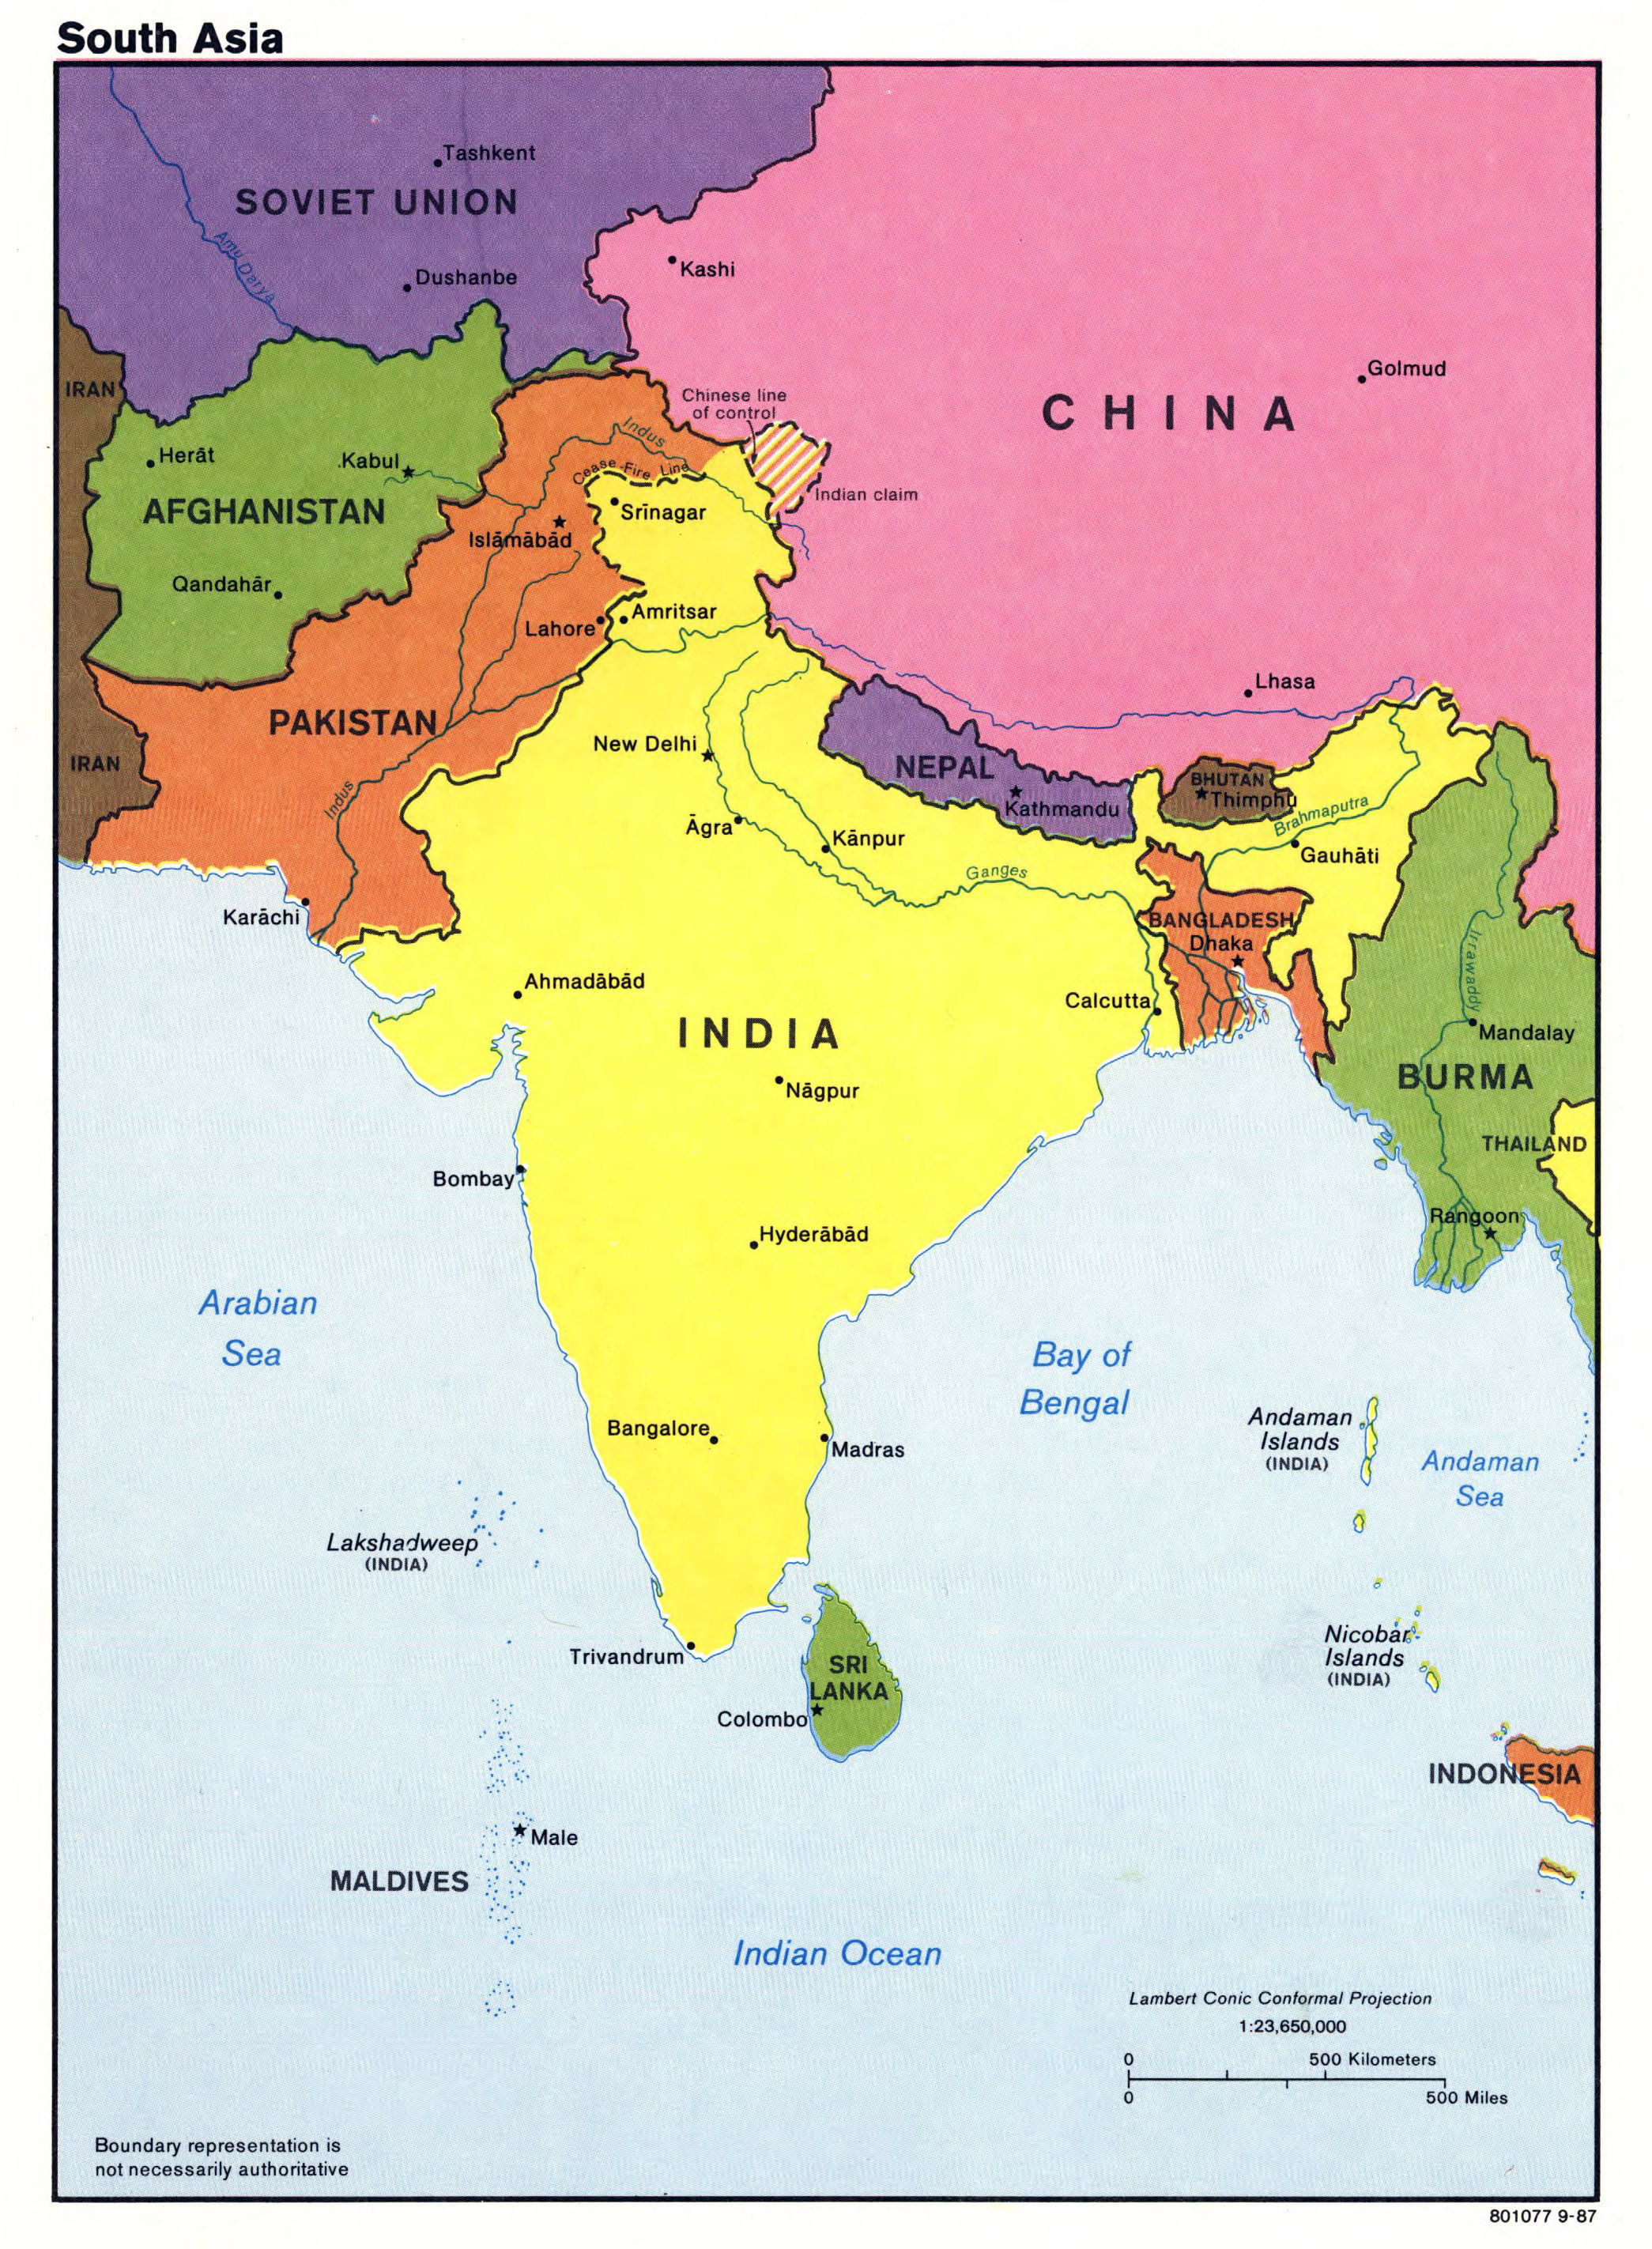 Large Detailed Political Map Of South Asia With Major Cities And Capitals    1987.